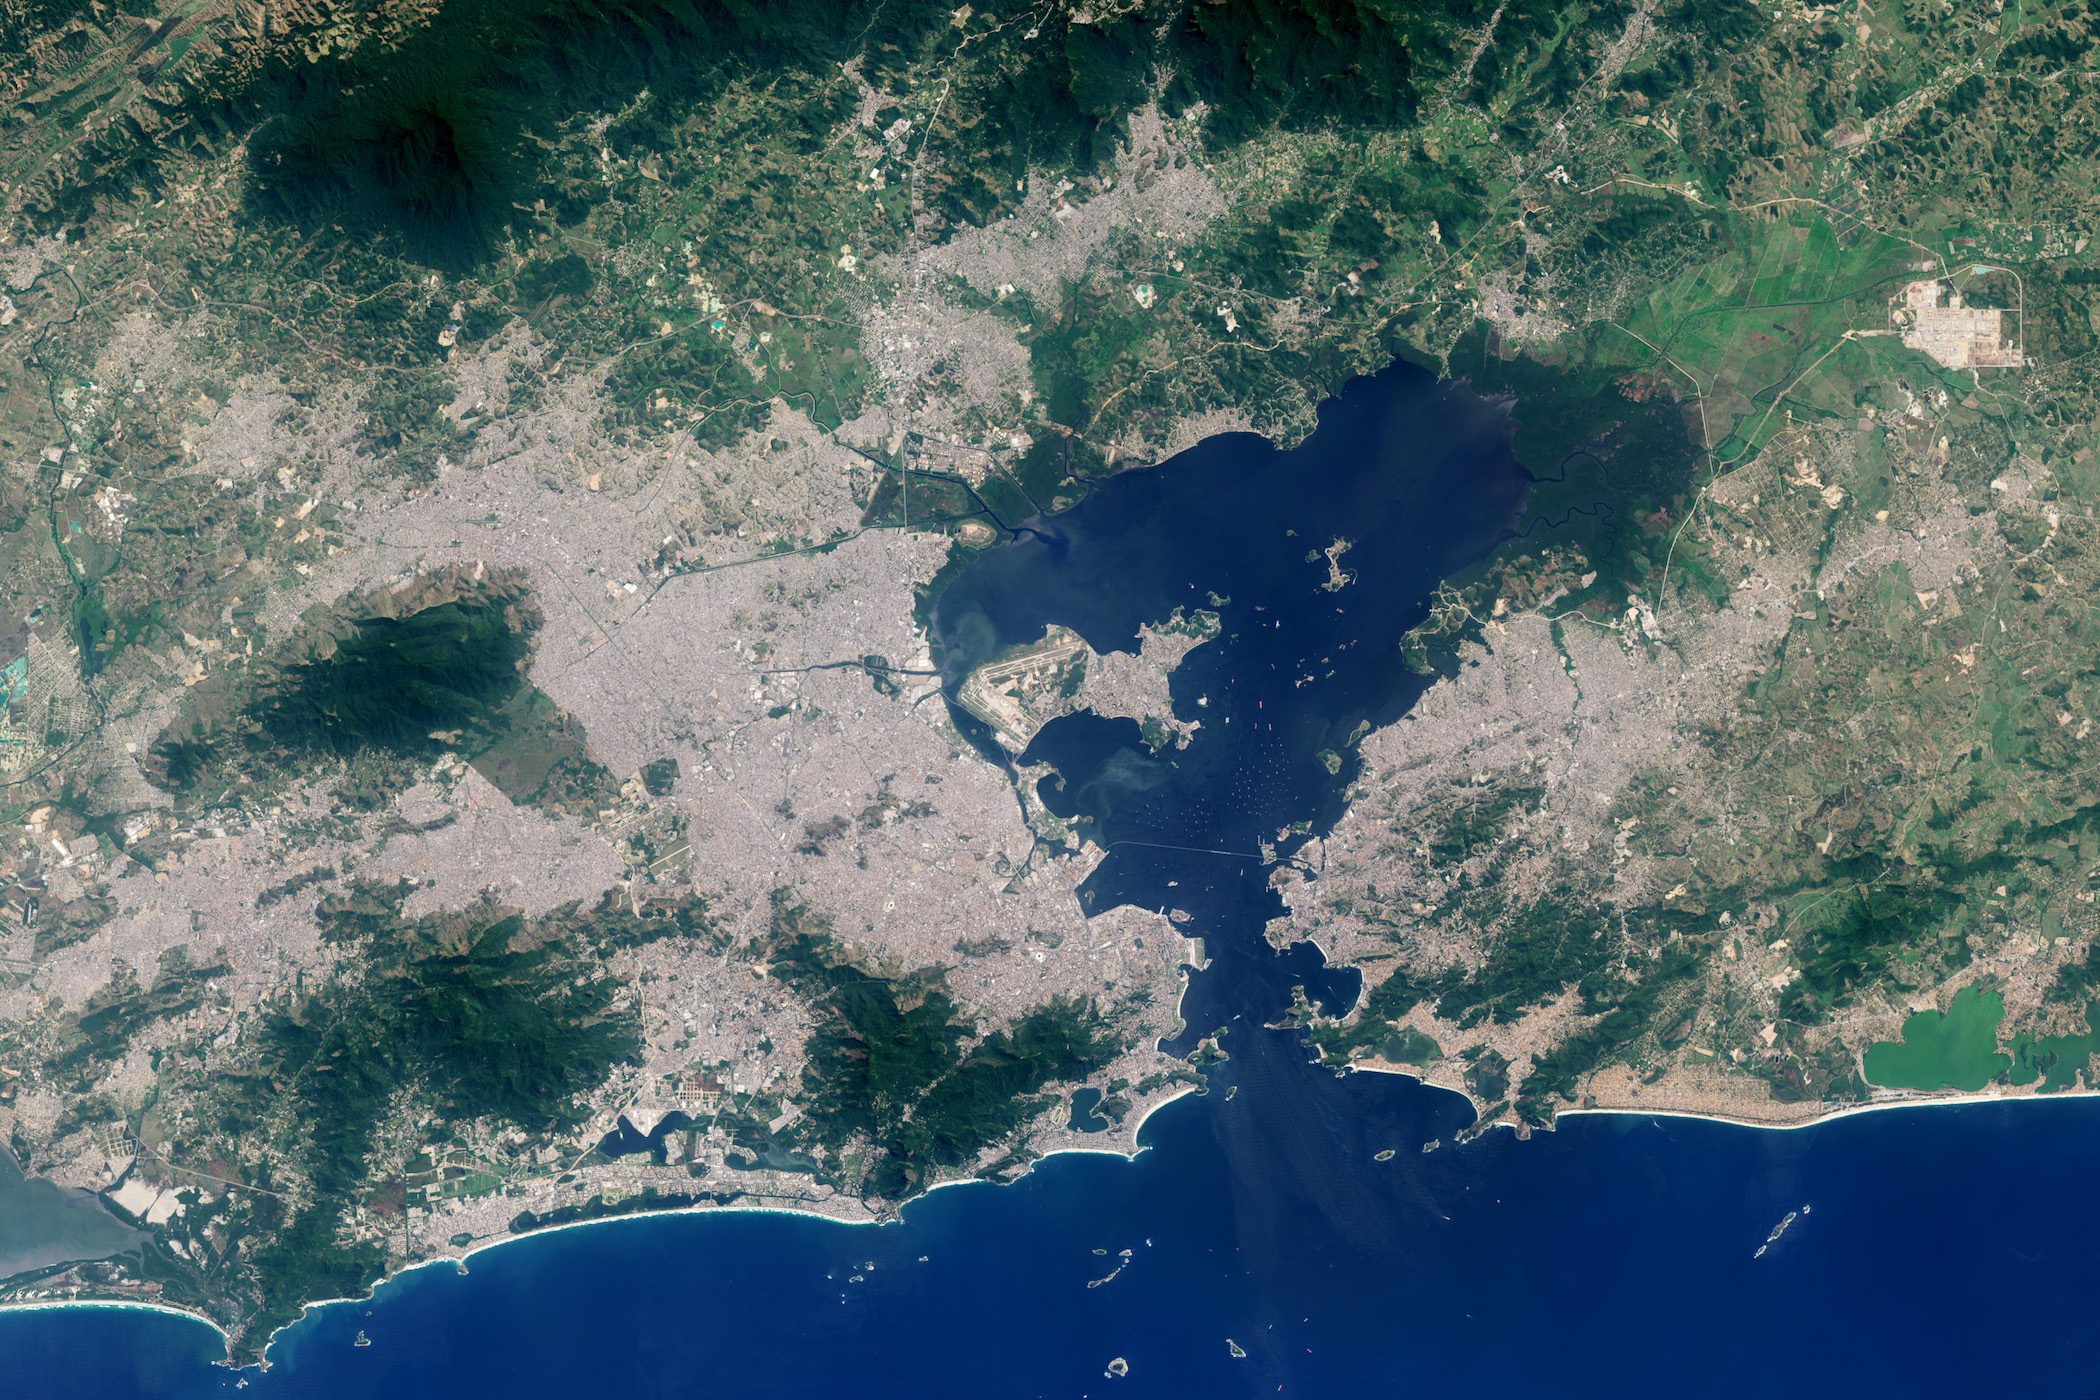 Today's Image of the Day comes thanks to the NASA Earth Observatory and features a look at the development of the city of Rio de Janeiro.